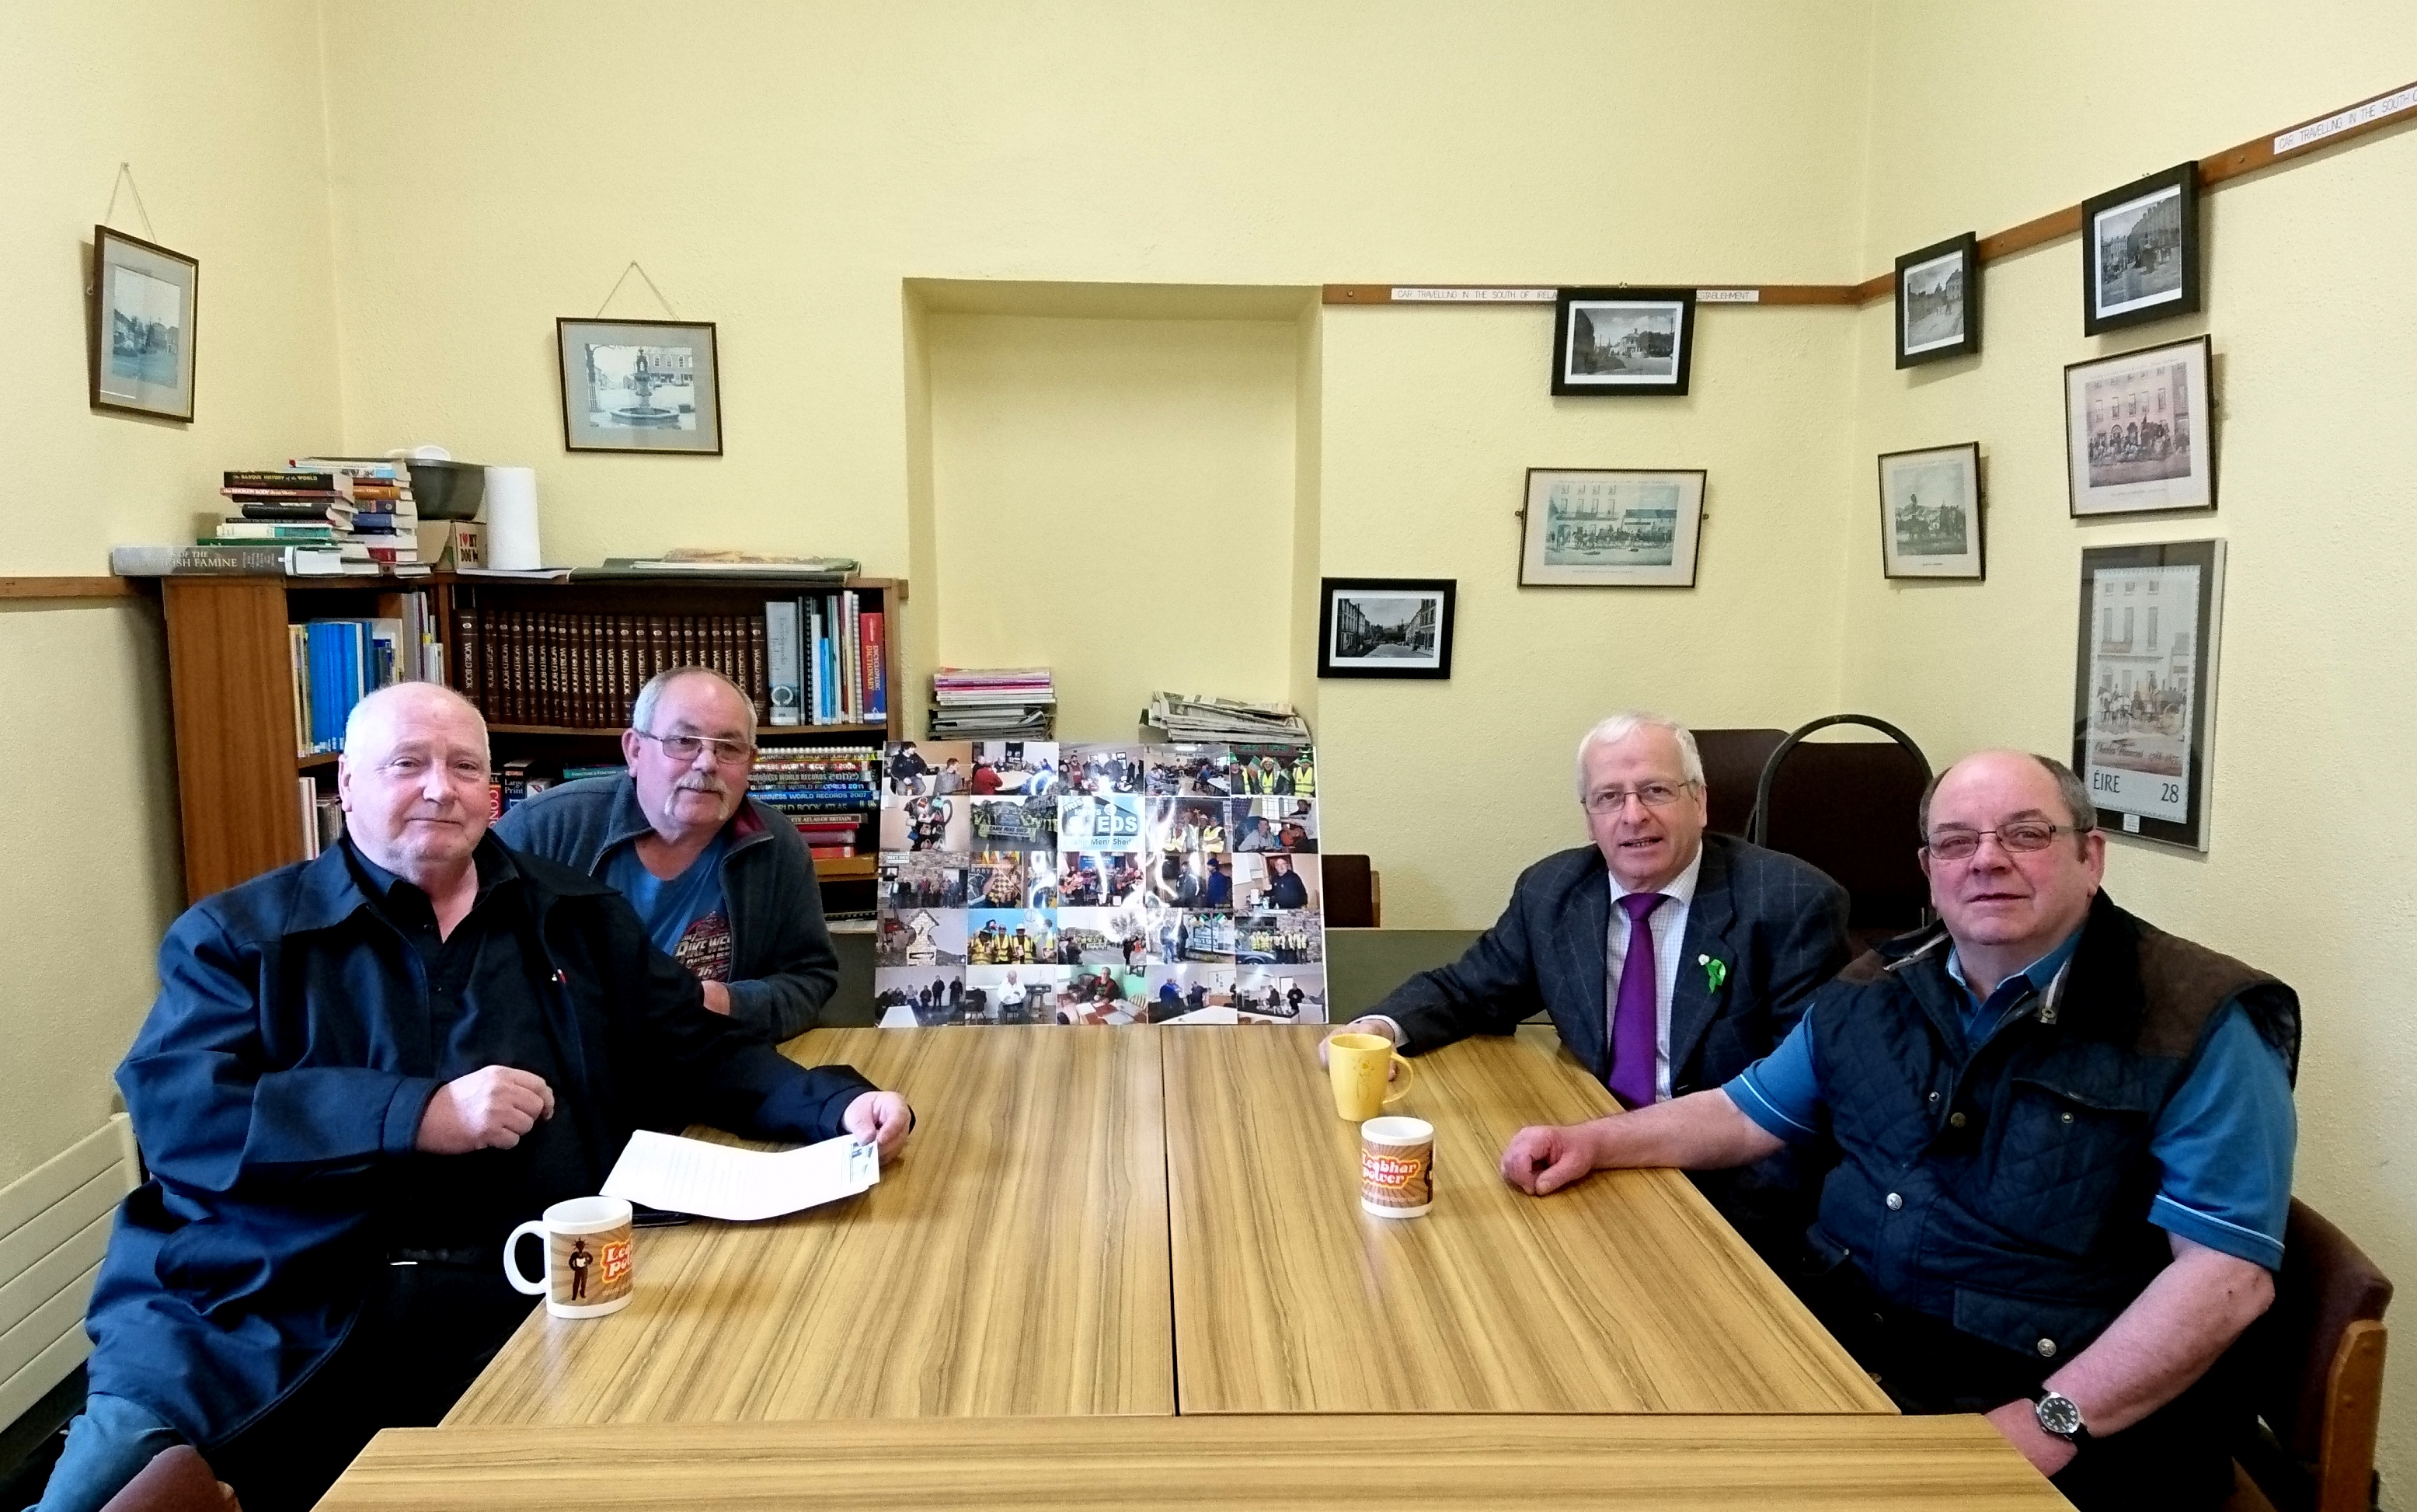 Cahir Men's Shed visit the library